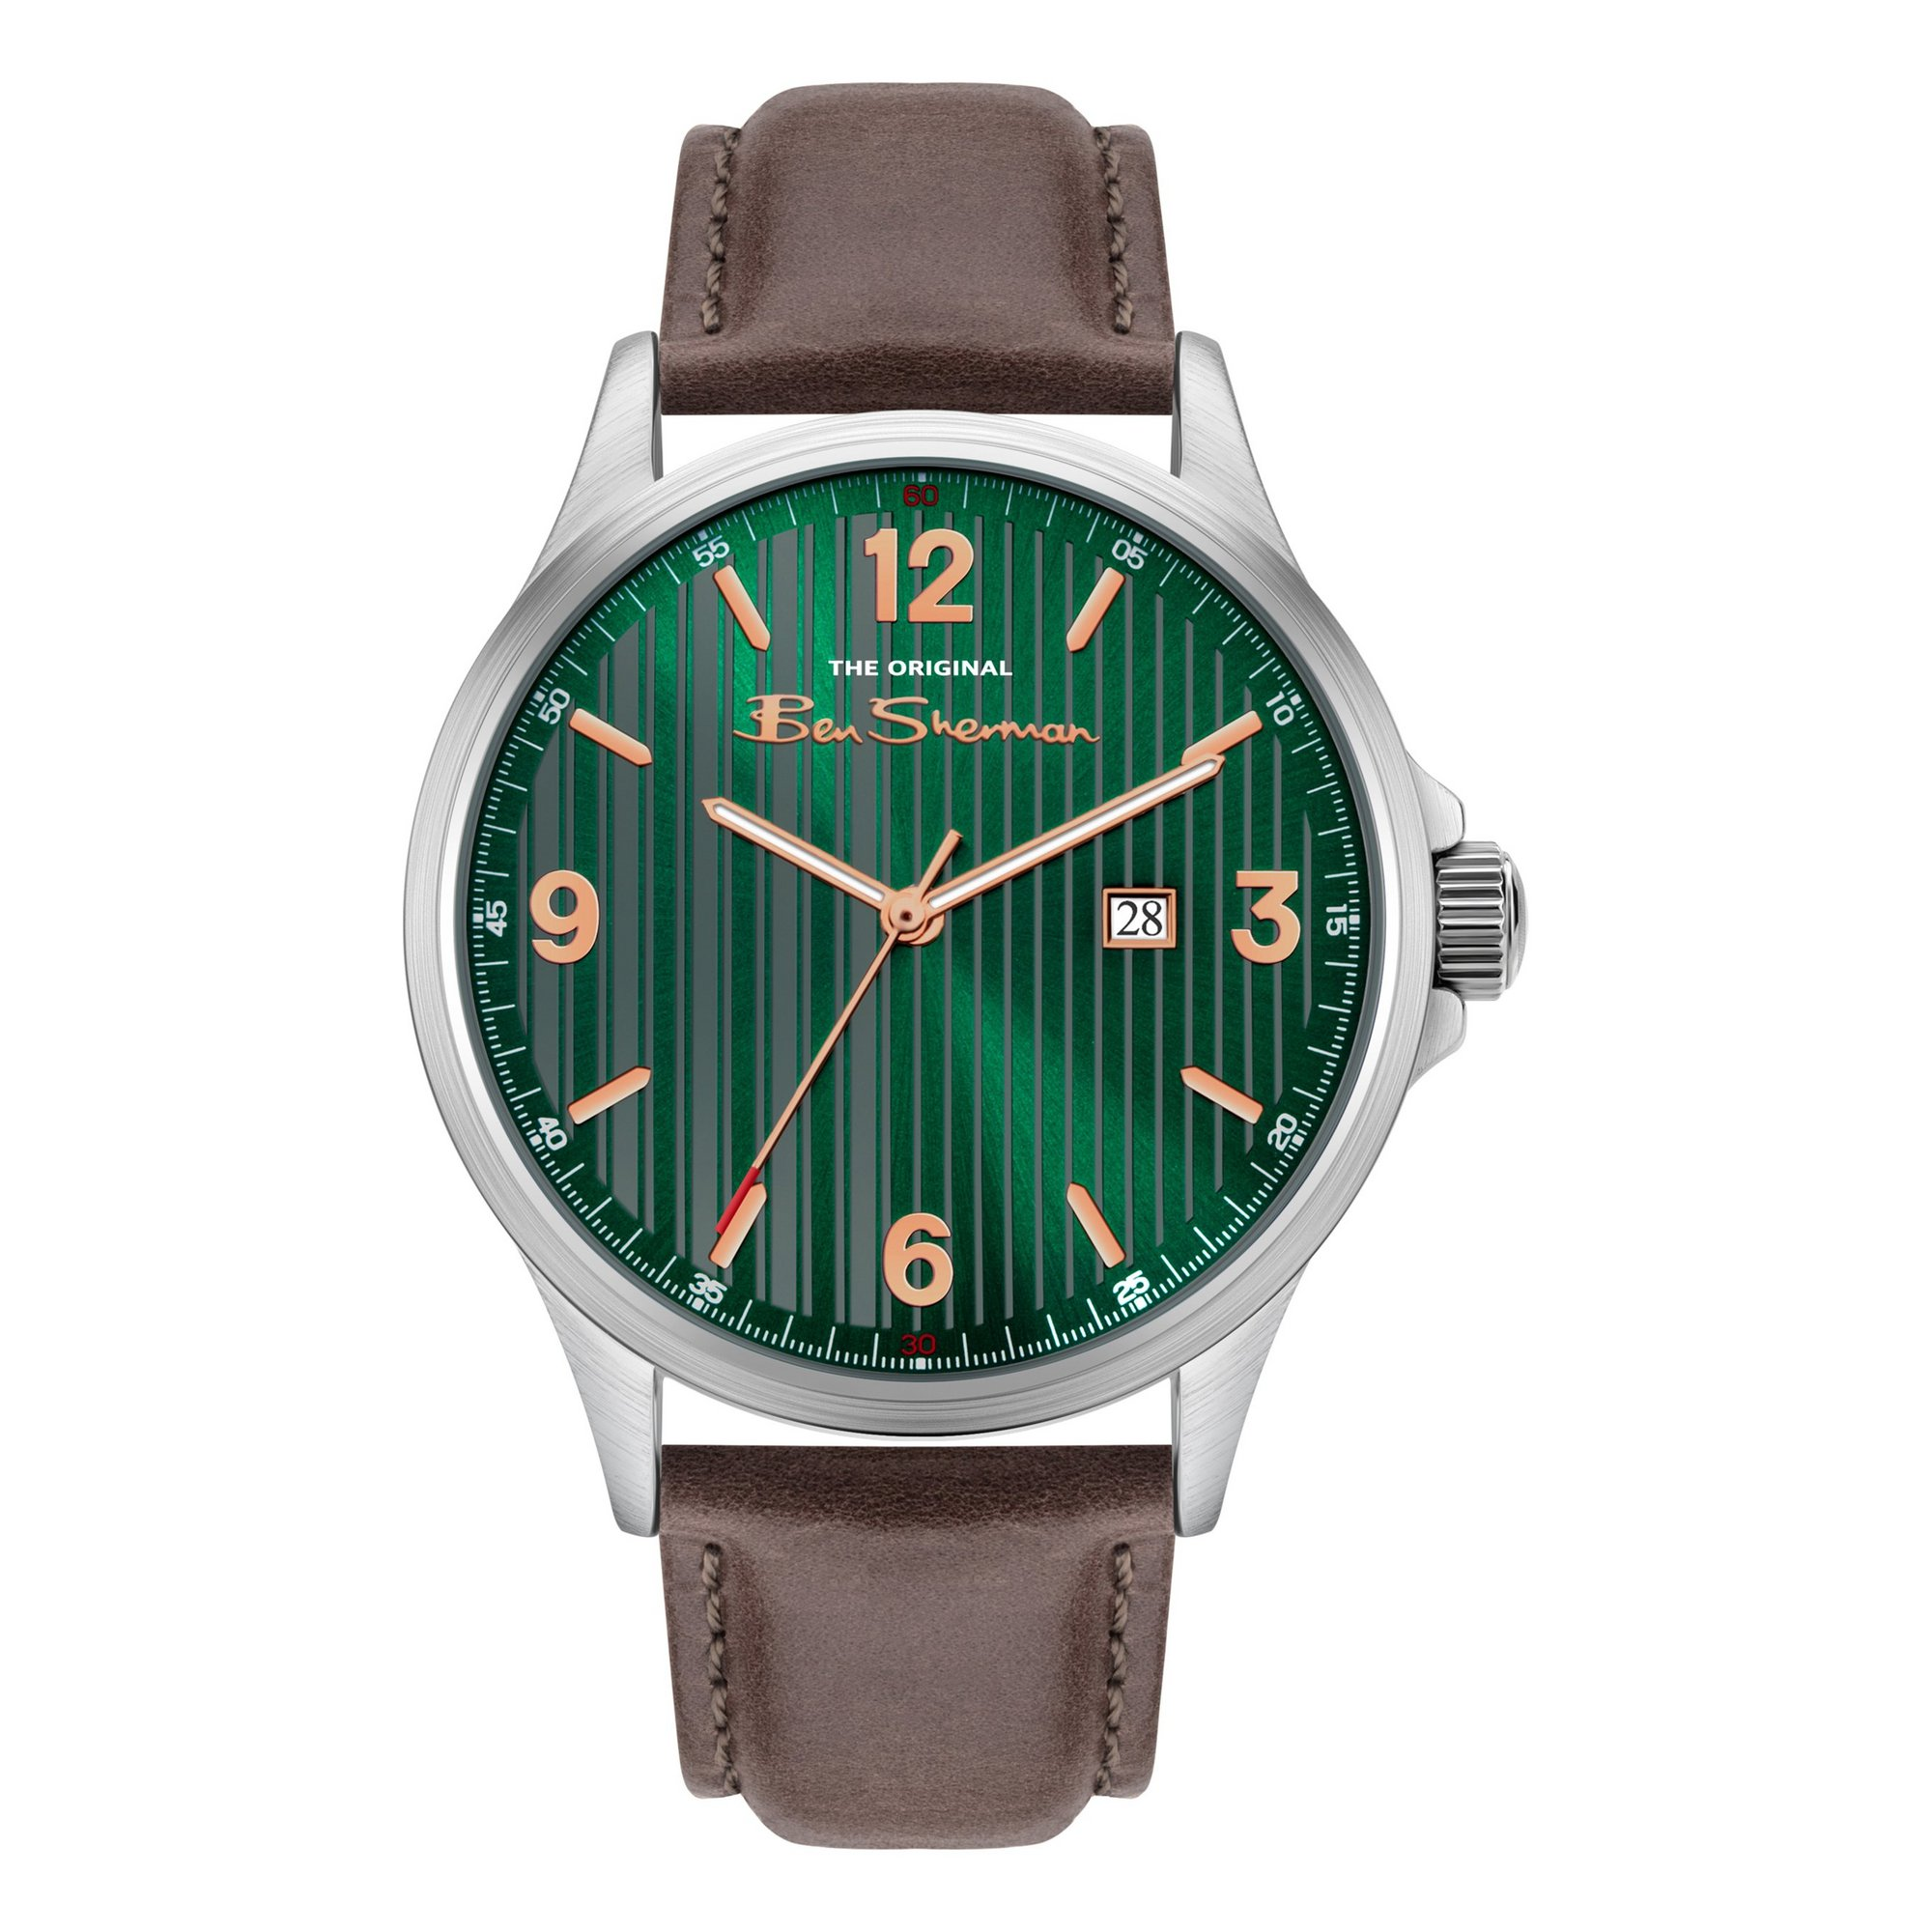 Image of Ben Sherman Watch with a Brown Strap and Green Dial